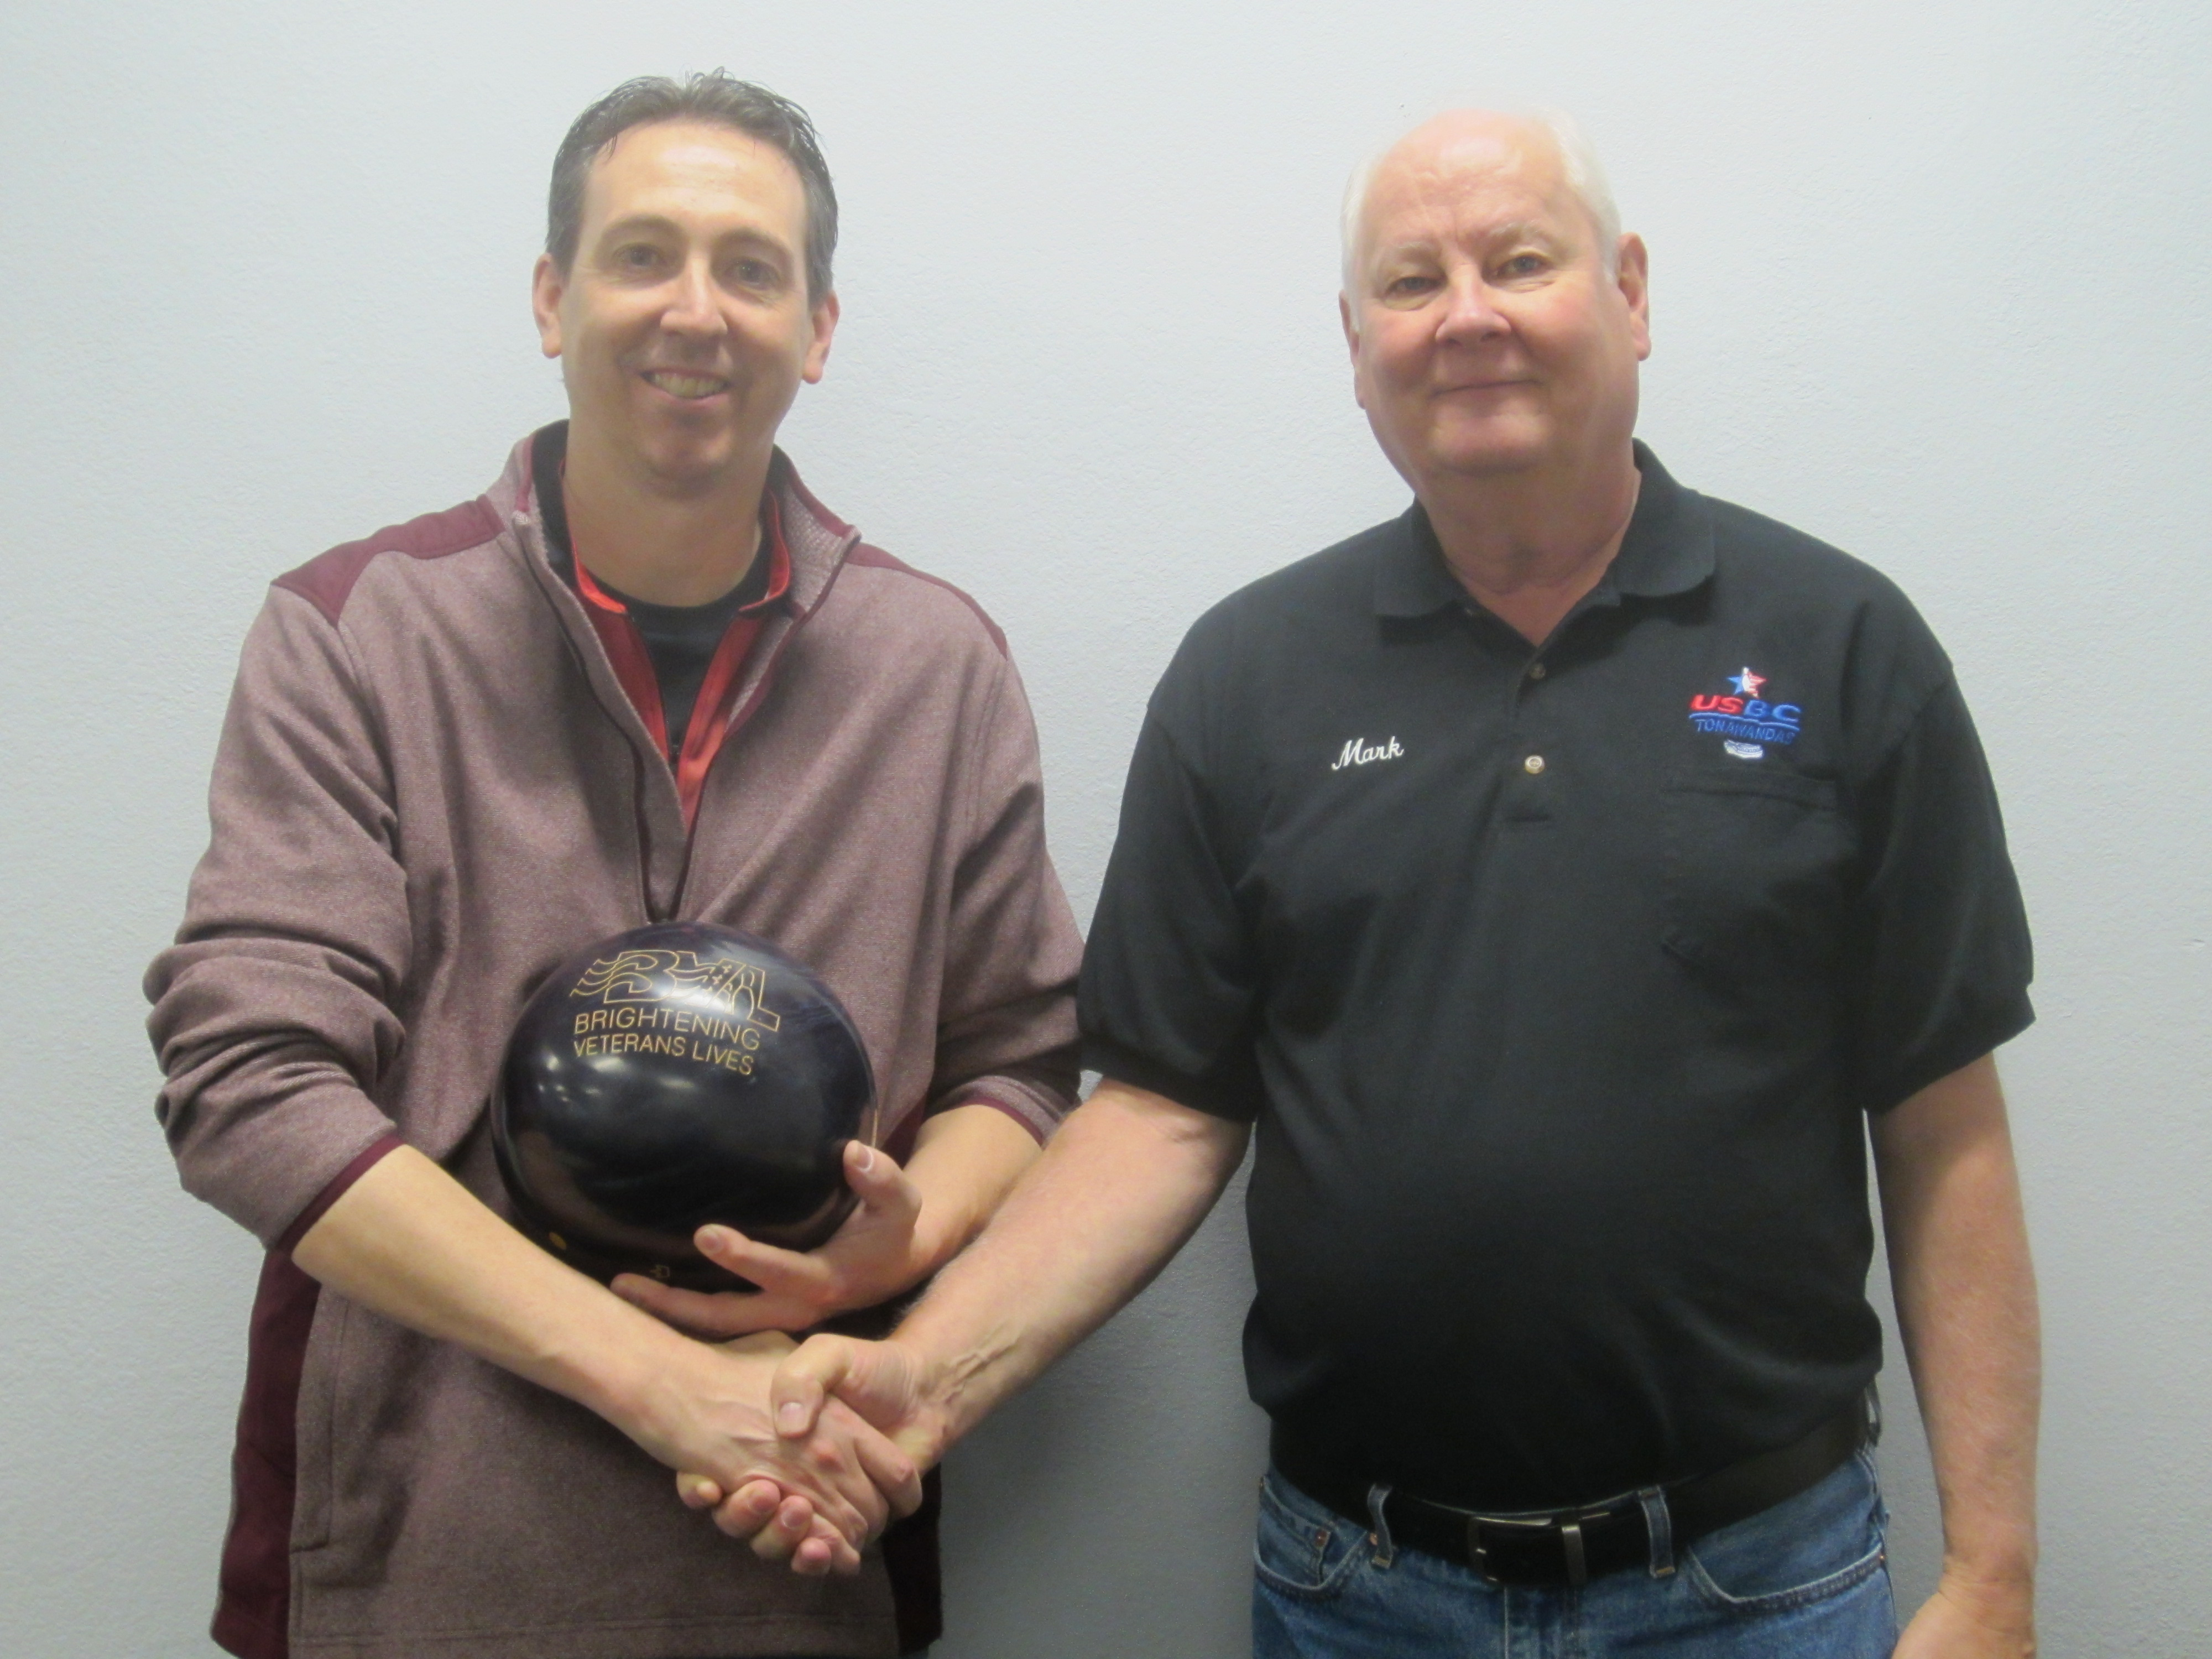 High qualifier Pat Brick (with bowling ball) and Mark Buffington